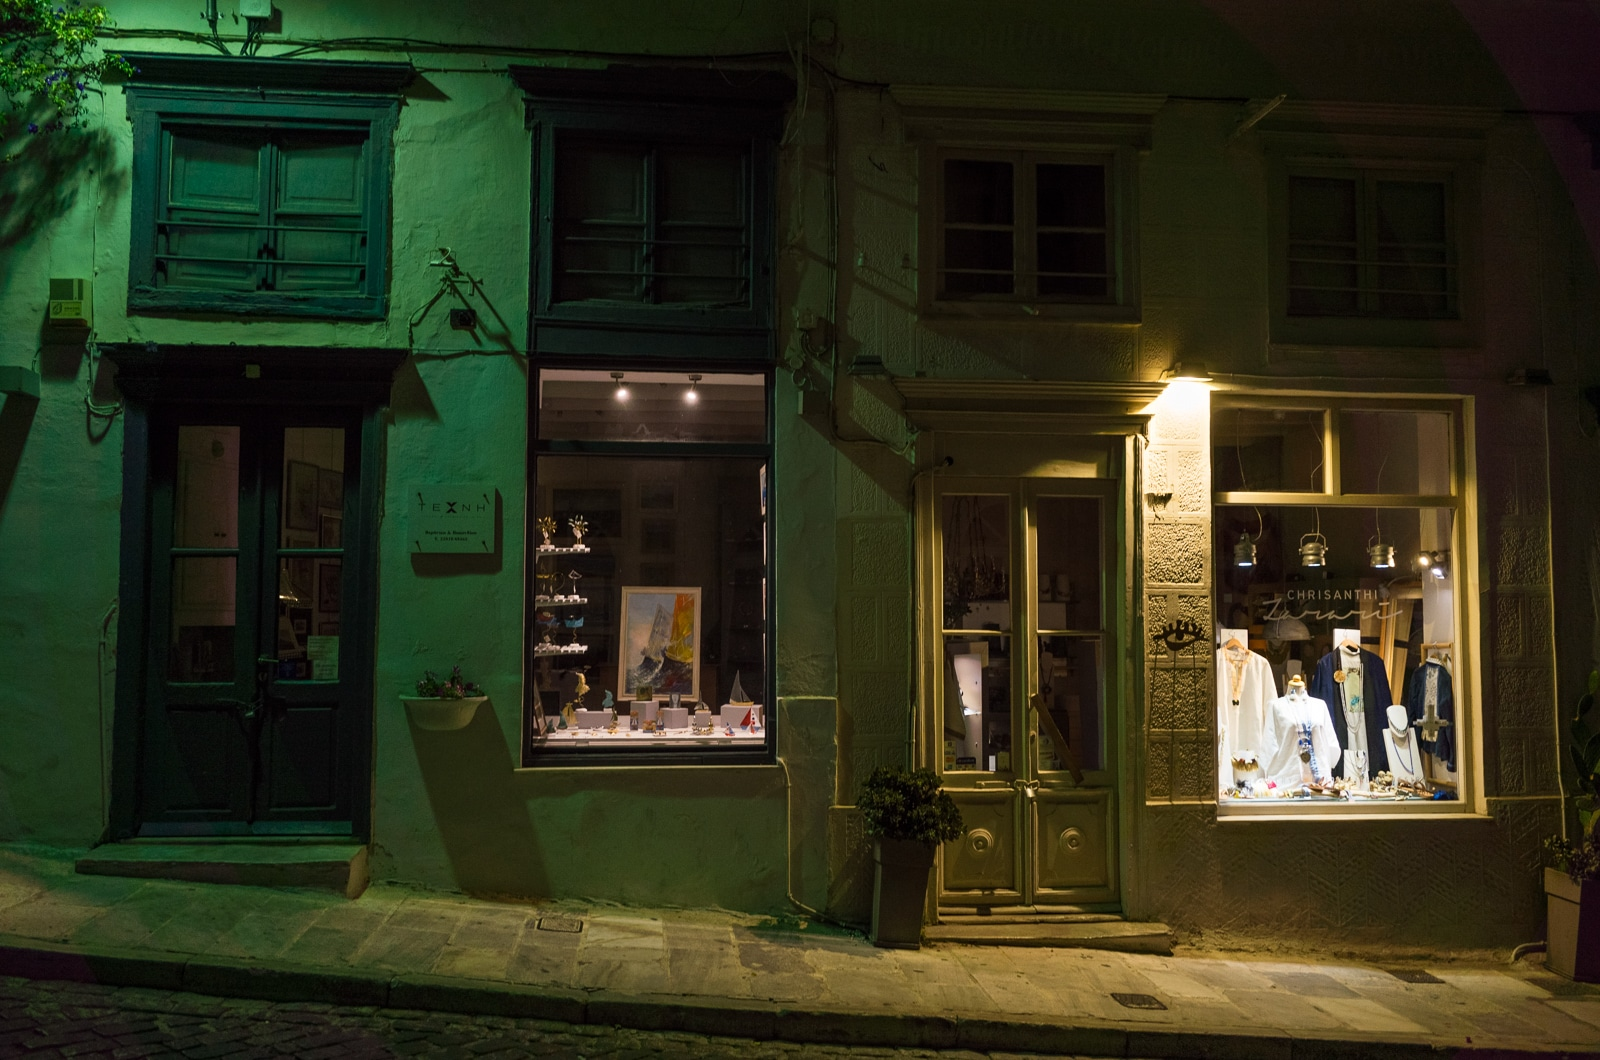 Syros : A Greek Island with Roman Influence Shops in the night